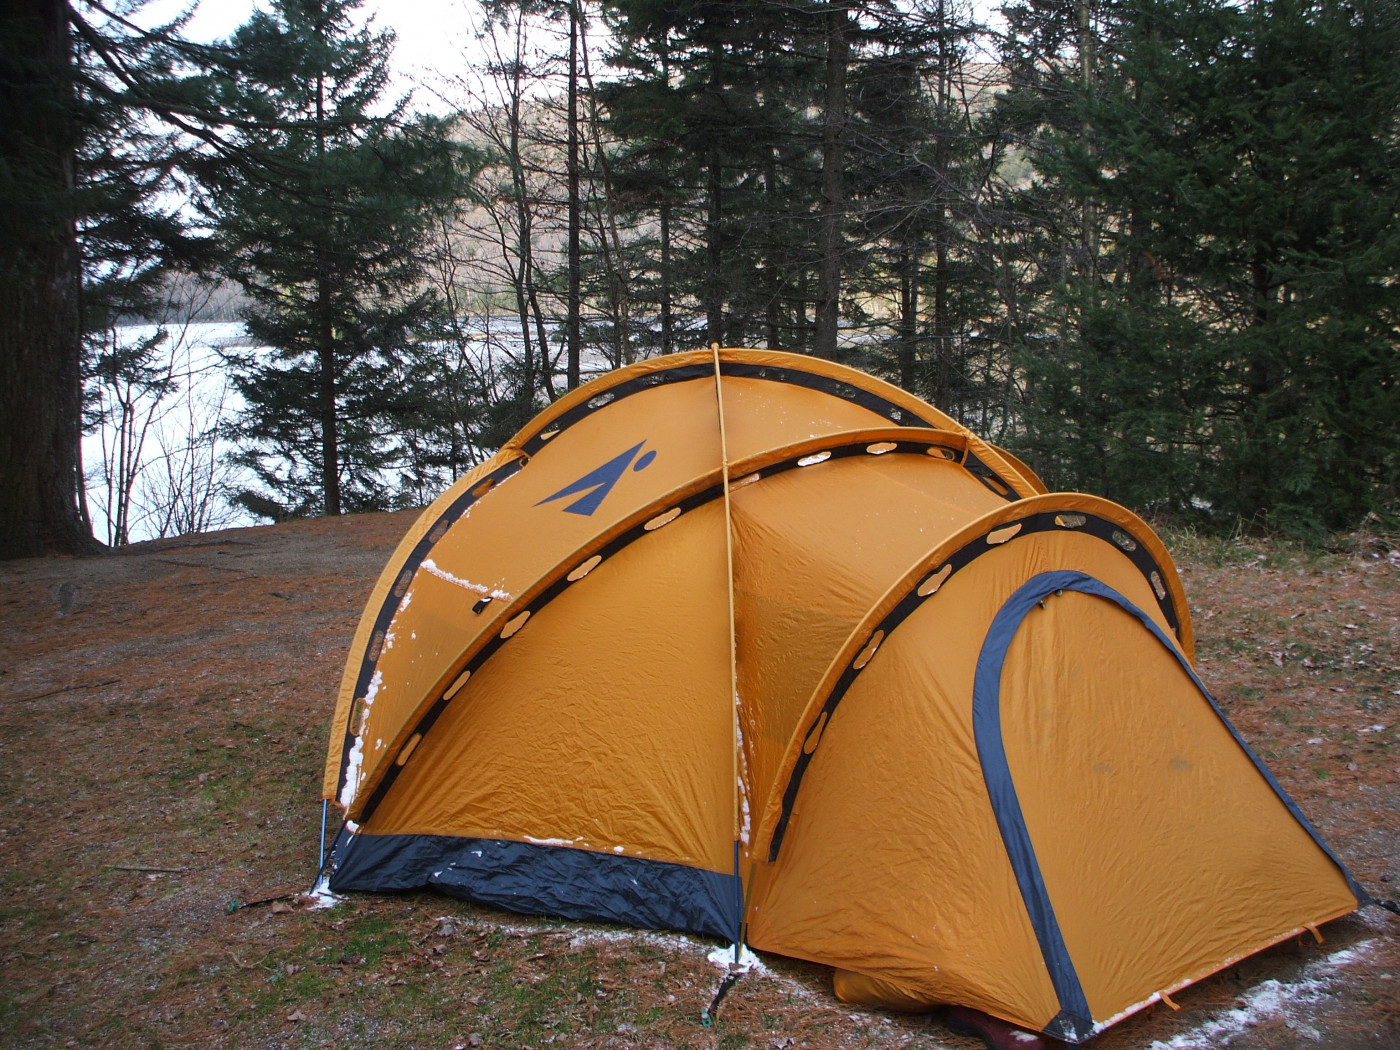 An example of a four-season tent.